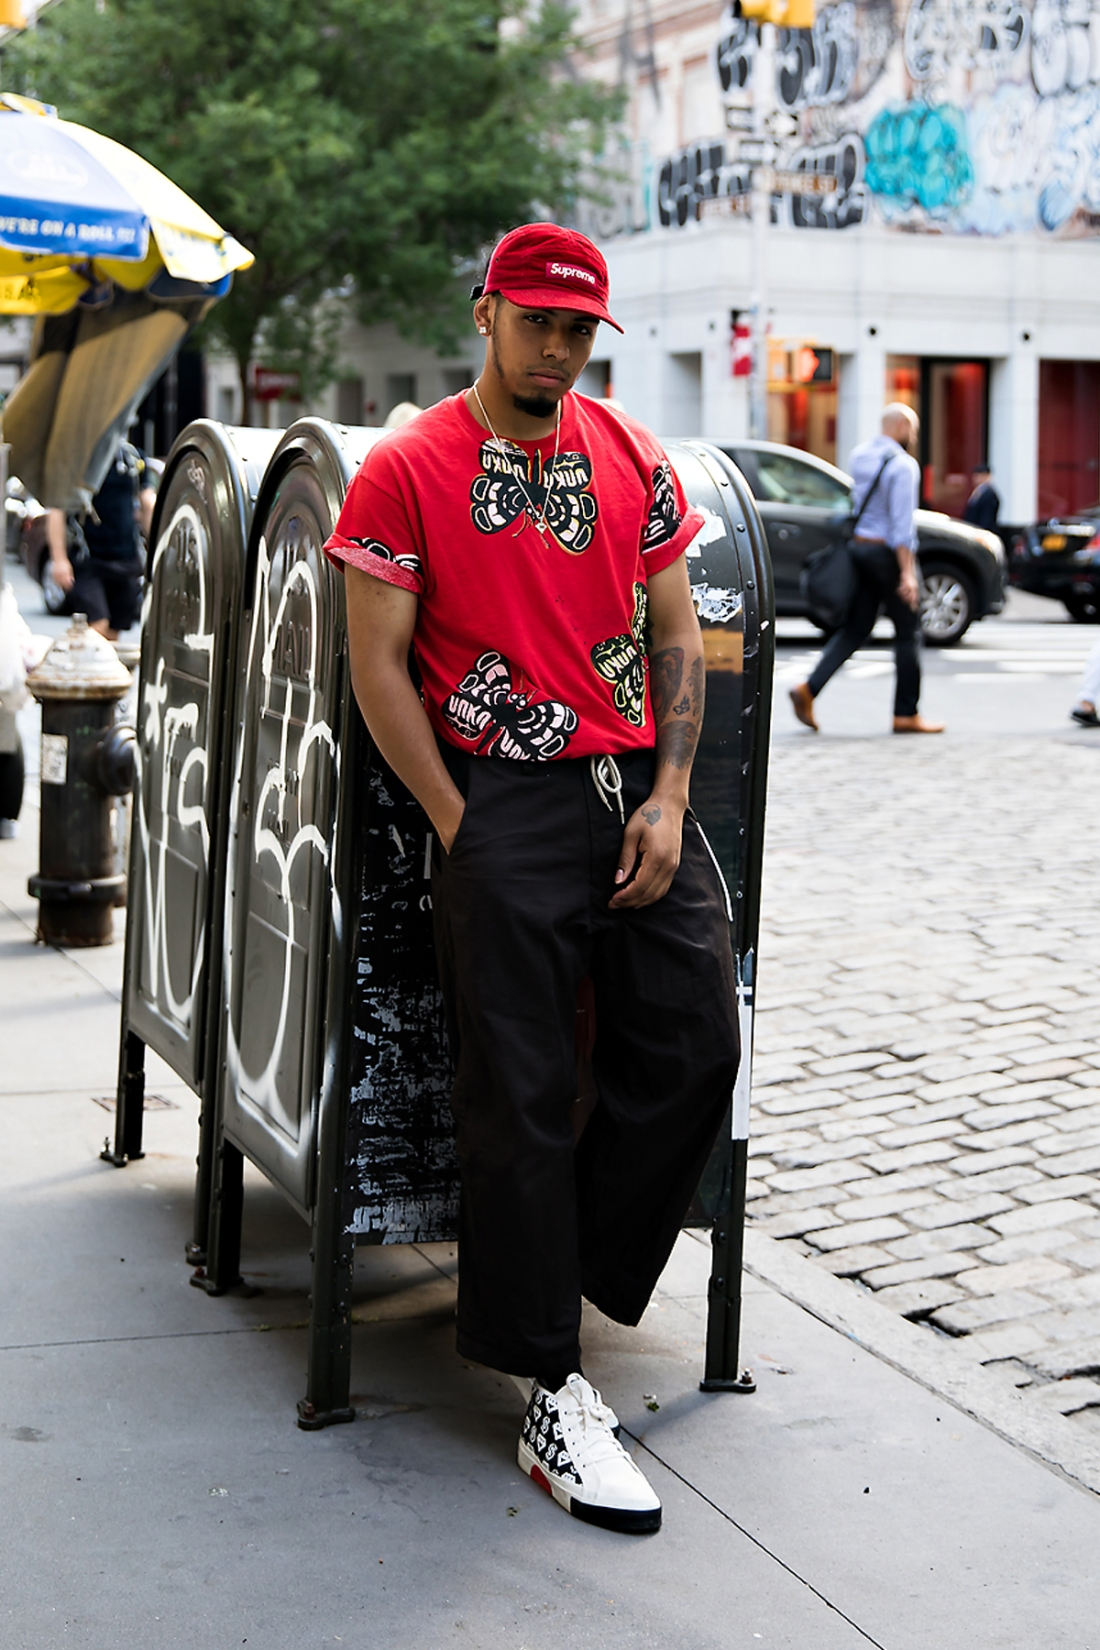 Armando Davila, Street Fashion 2017 in New York.jpg